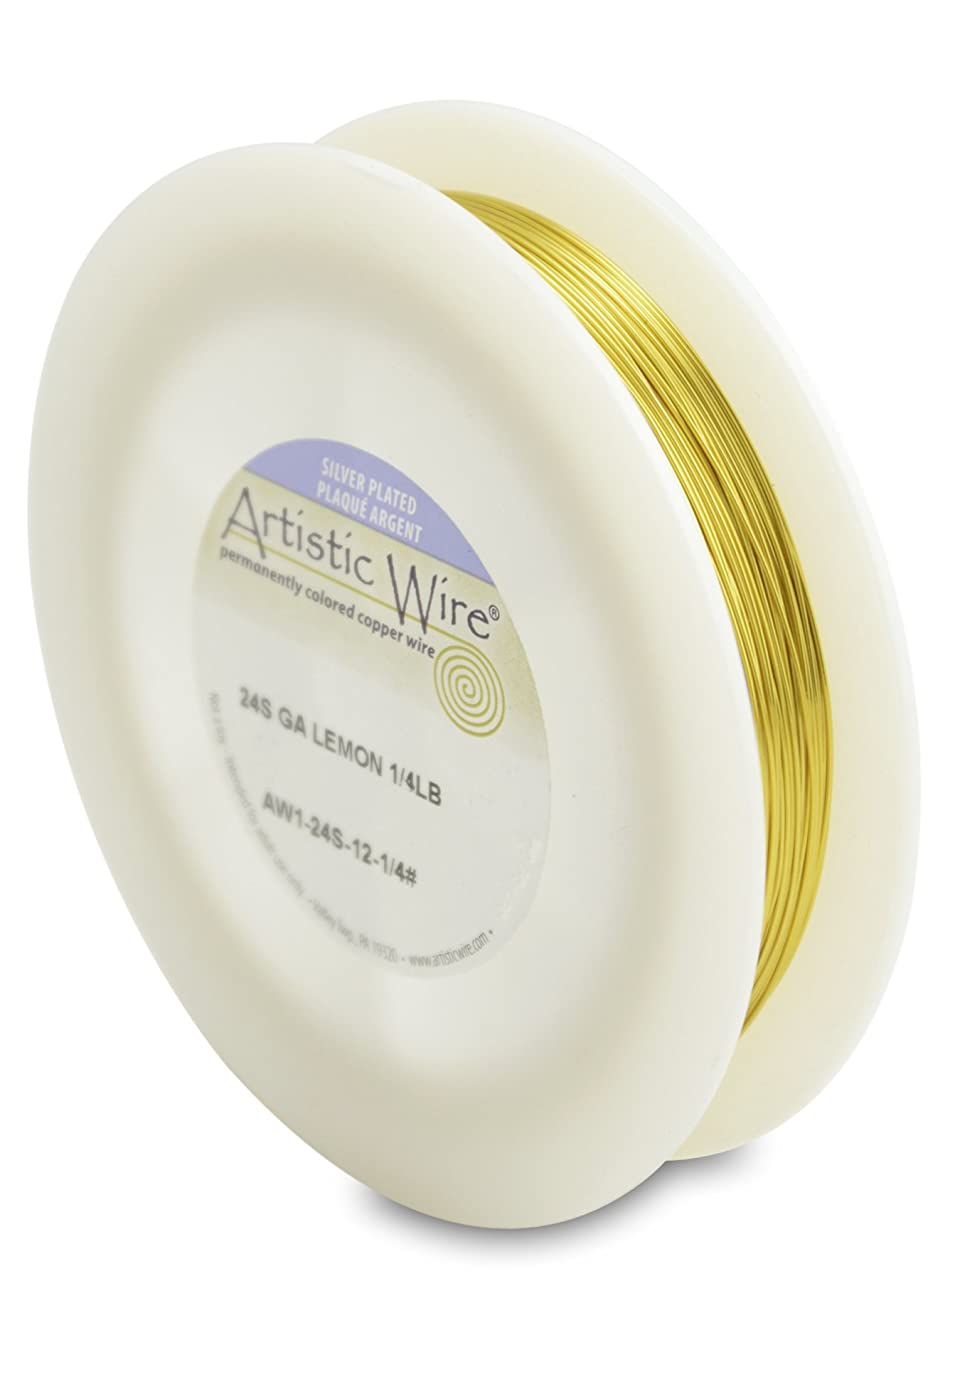 Artistic Wire 24-Gauge Silver Plated Lemon Wire, 1/4-Pound